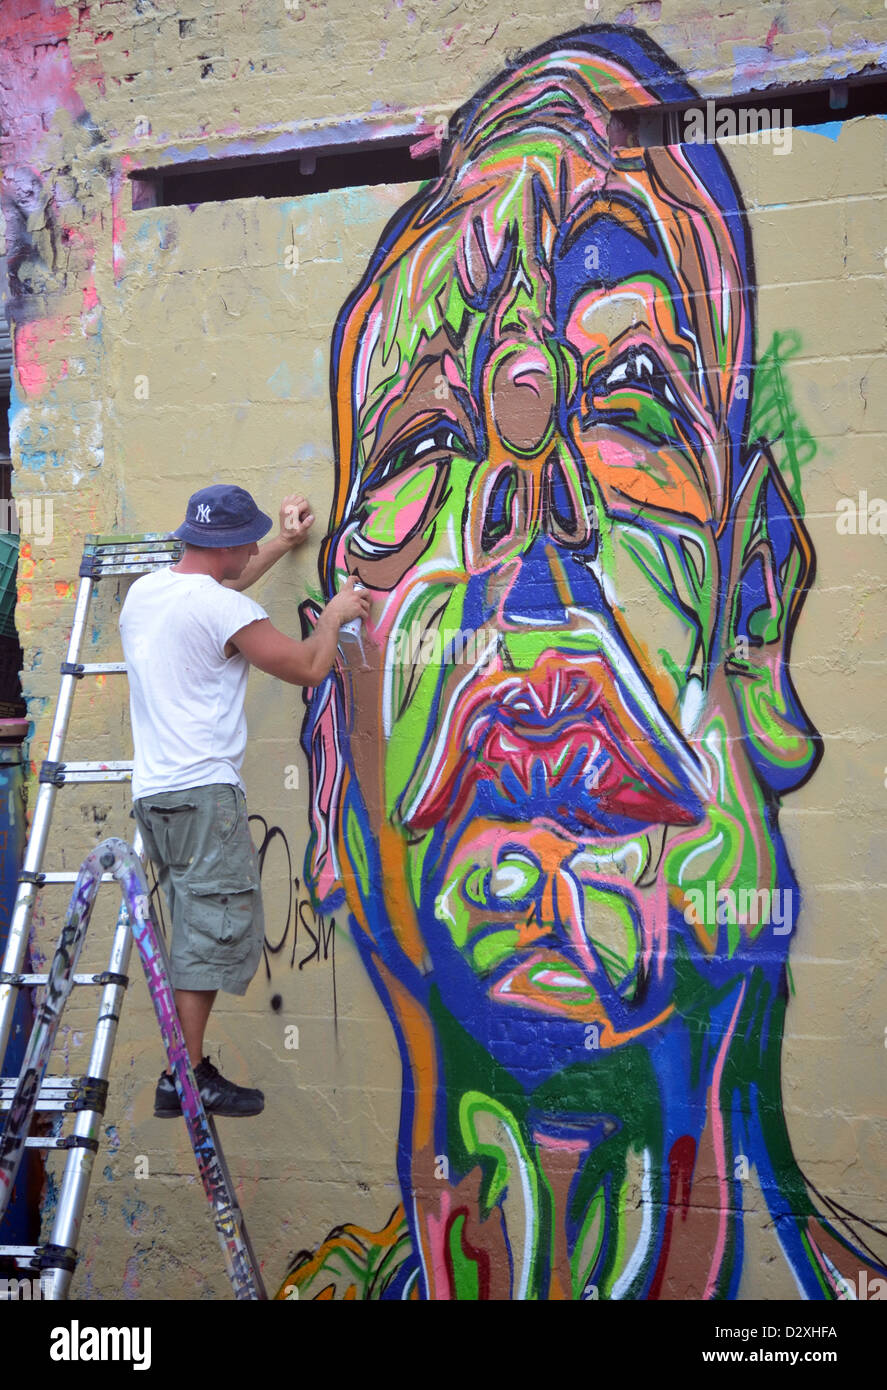 Graffiti artist painting at 5 pointz in long island city queens new york